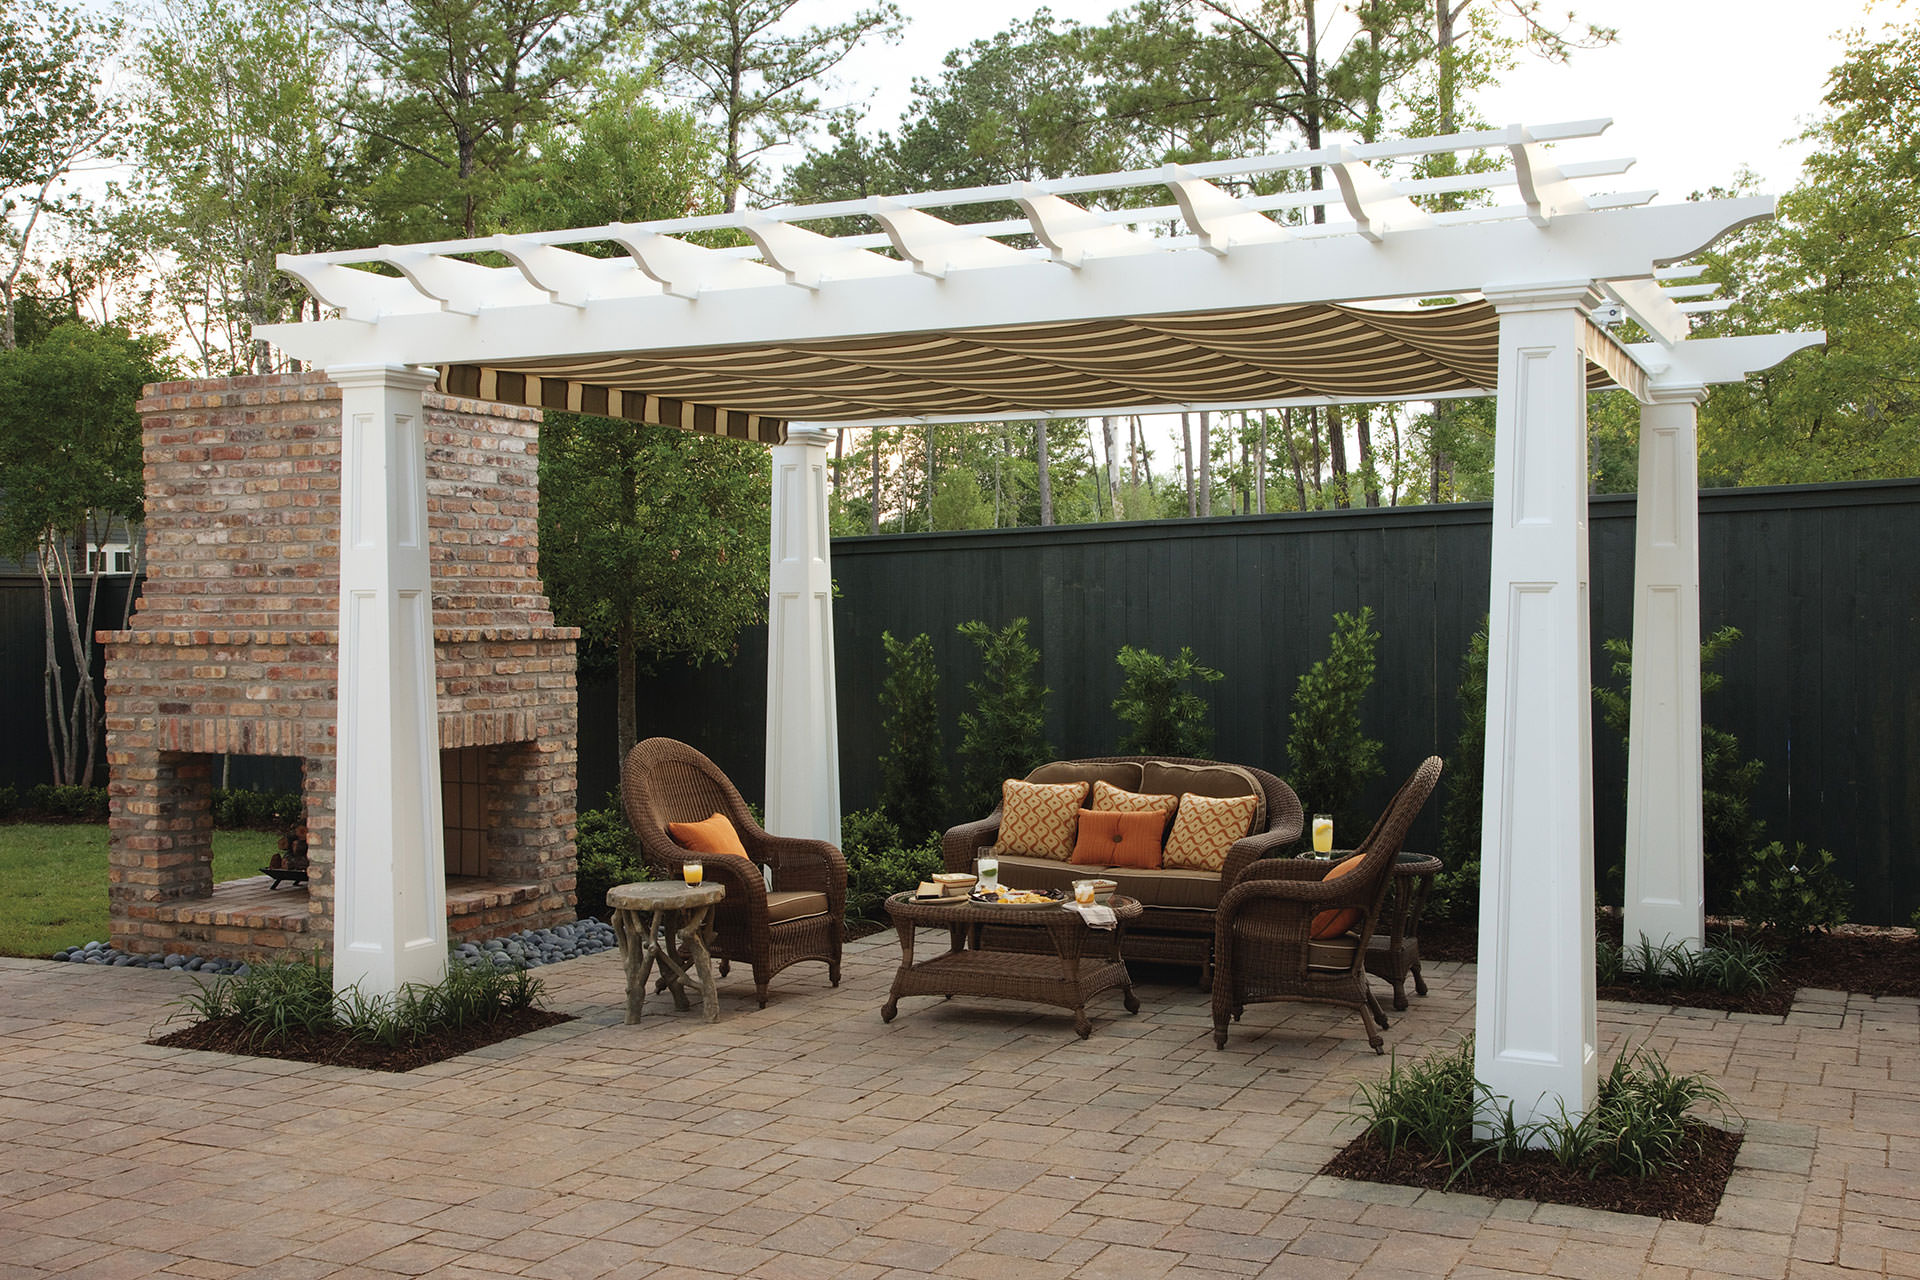 Zeitungsständer Selber Bauen Pergola Canopy In Southern Living Idea House Shadefx